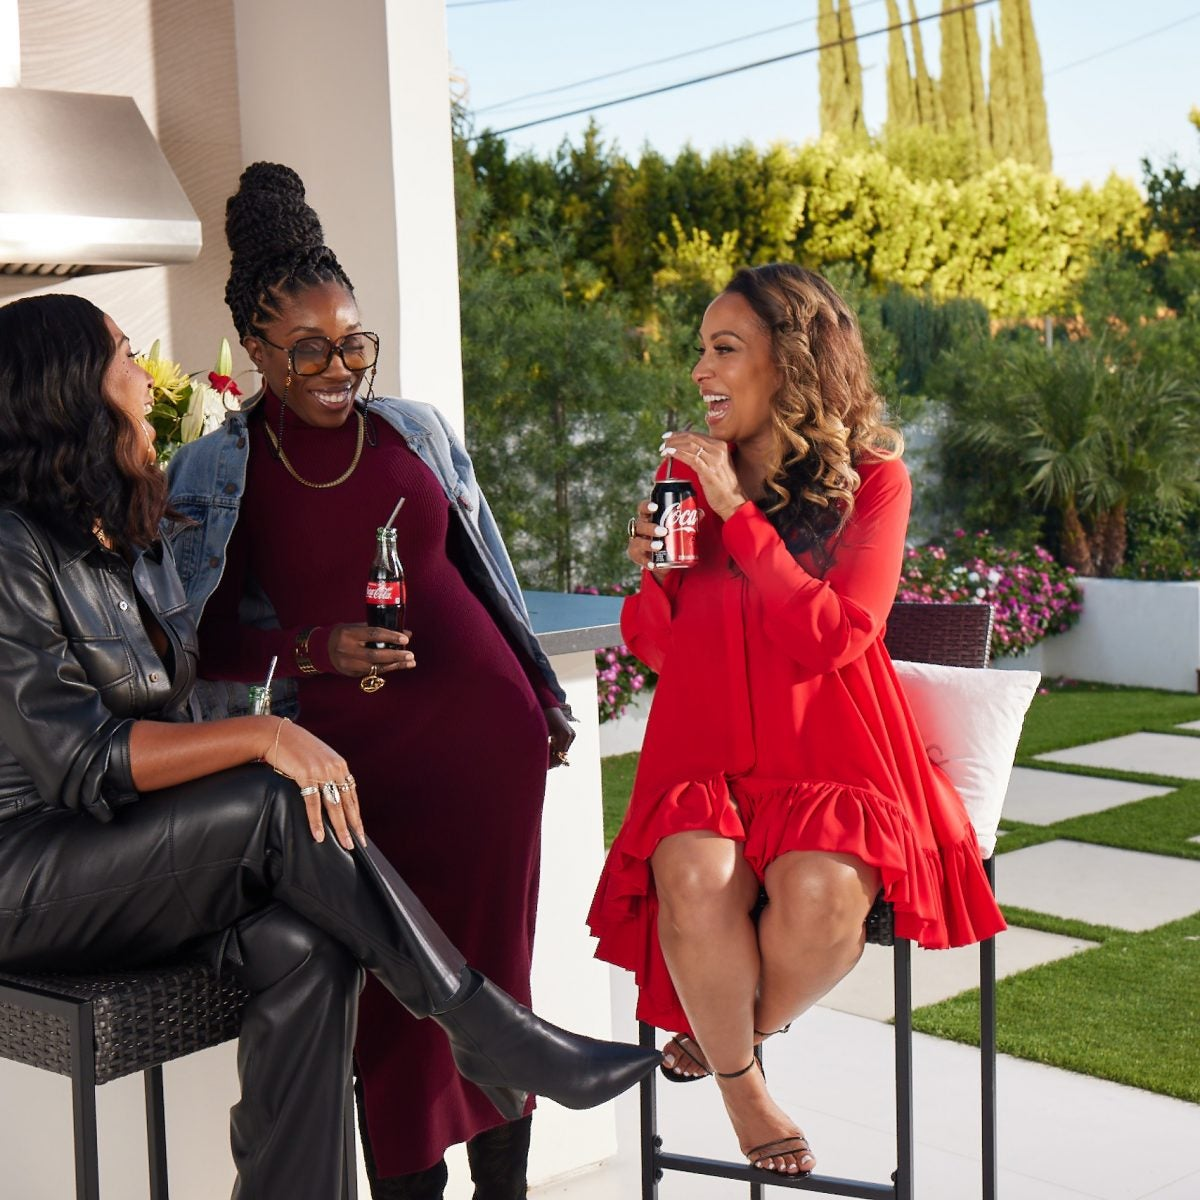 Watch Episode 3 of 'If Not for My Girls'